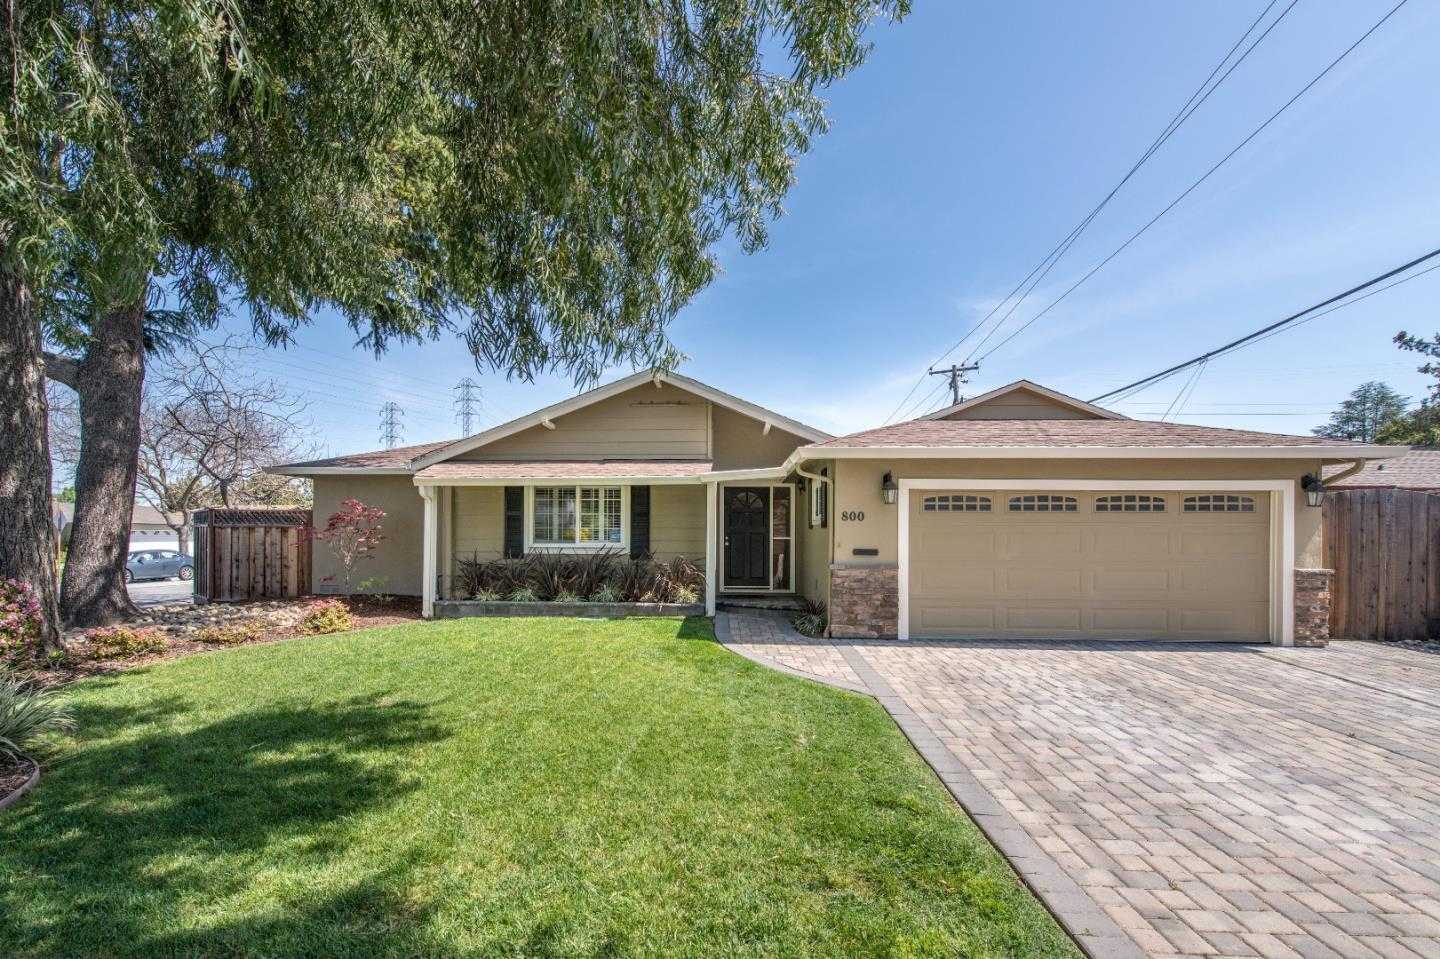 $2,288,888 - 4Br/4Ba -  for Sale in Sunnyvale